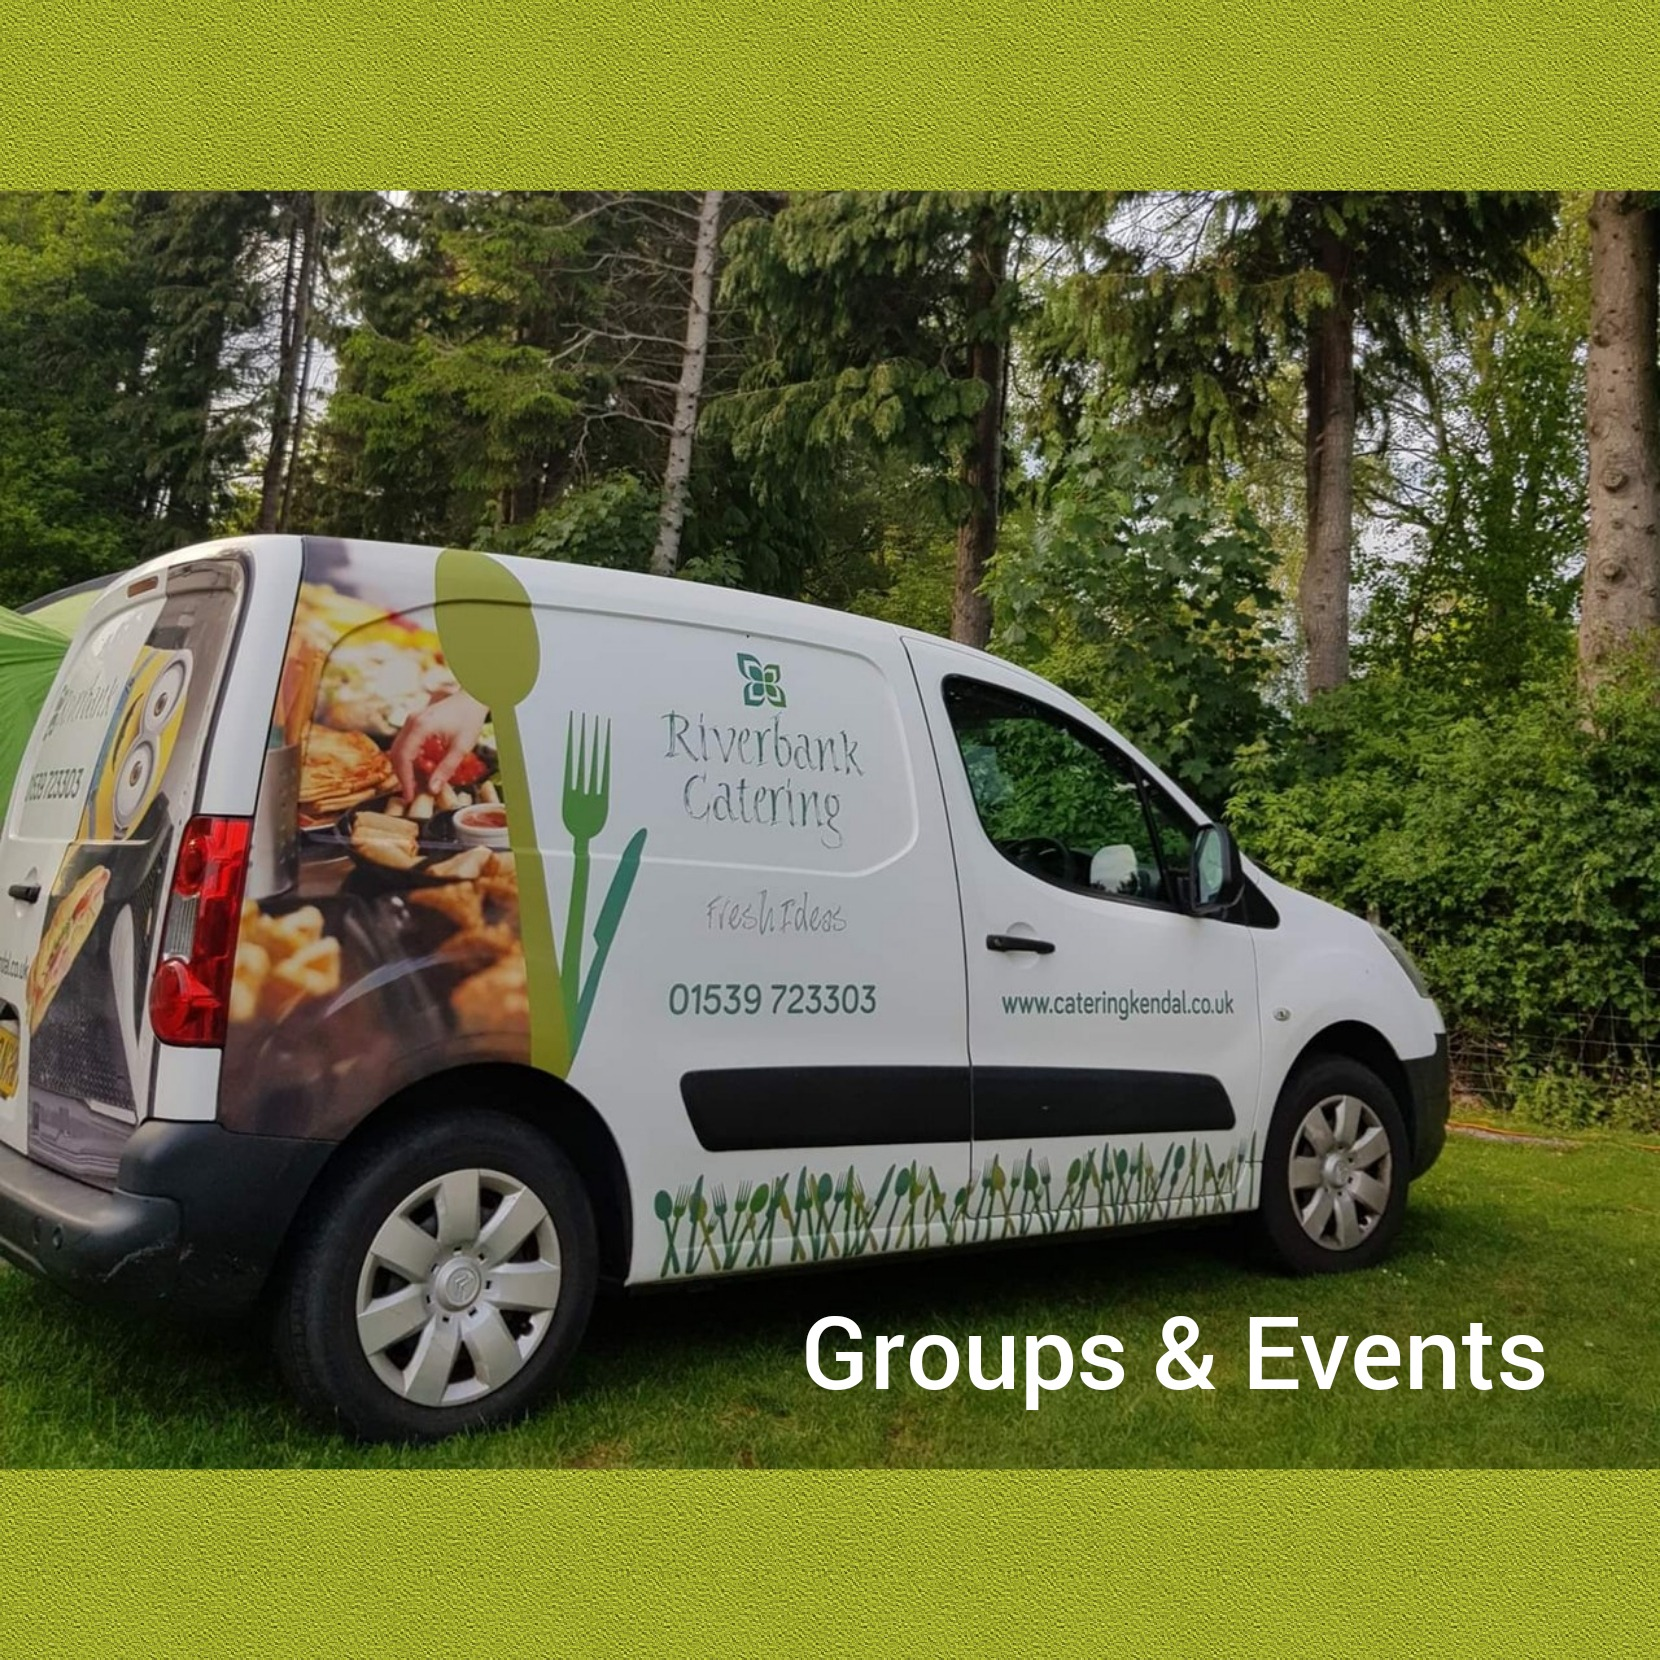 Groups & Events